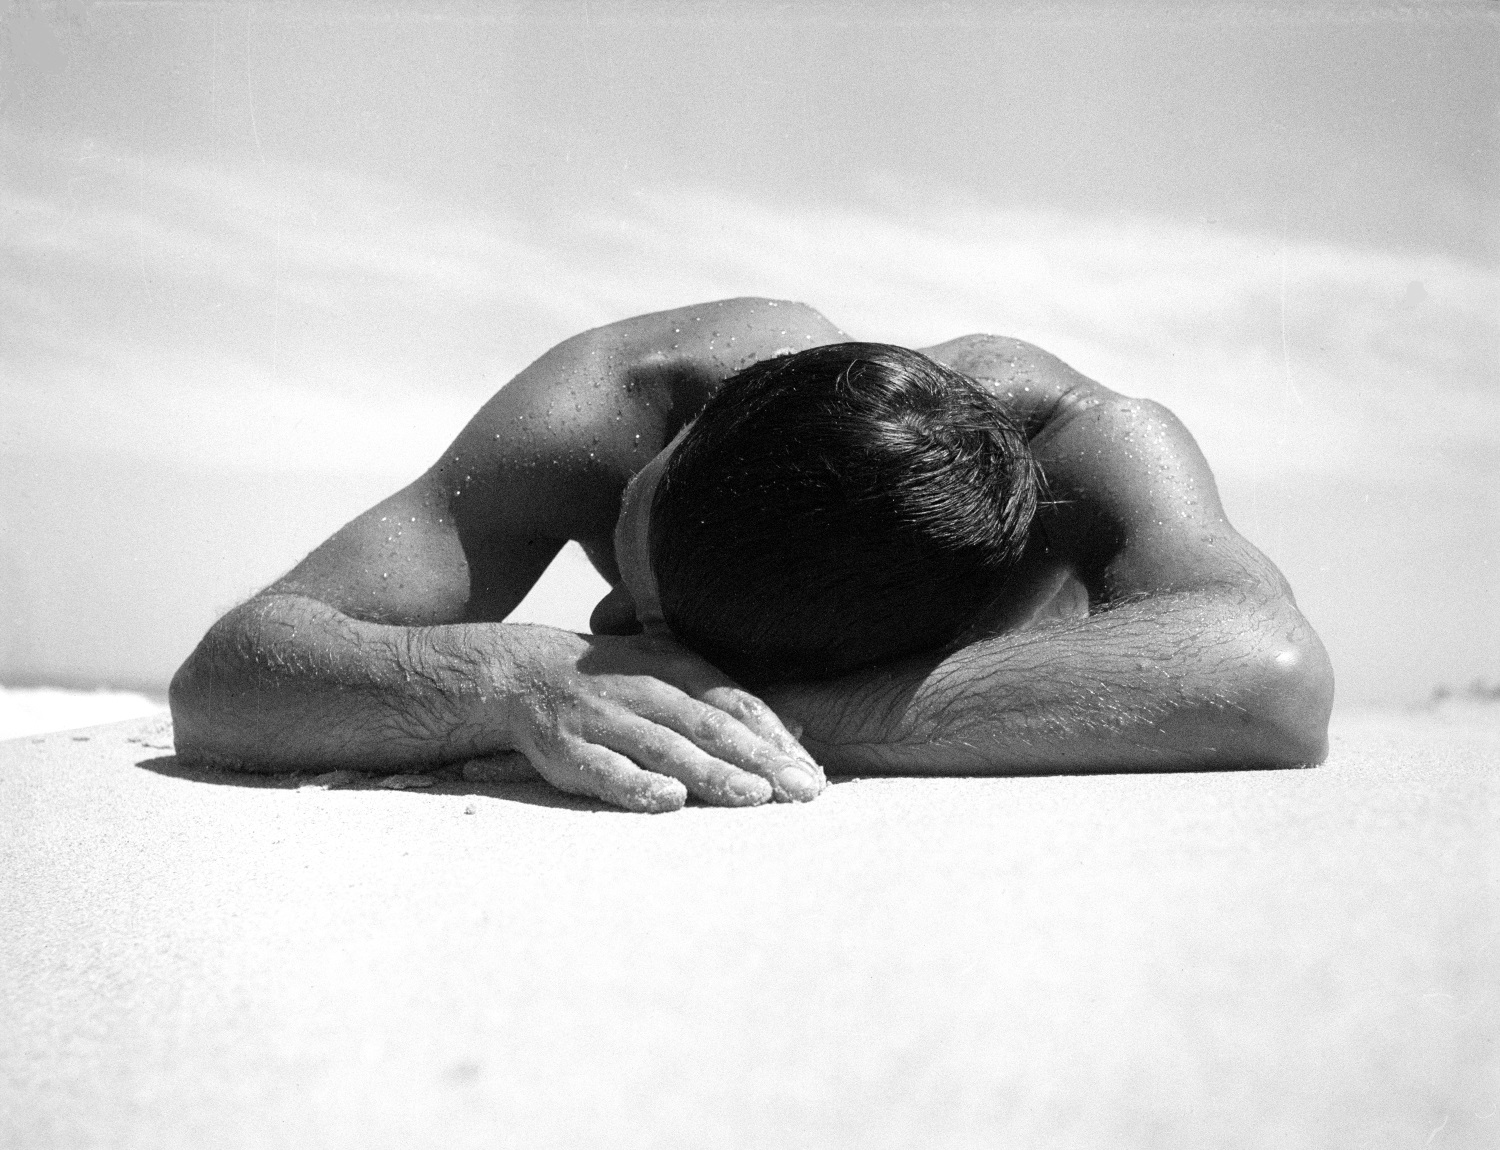 Sunbather, Photograph Copyright © Max Dupain - courtesy Light and Shadow Gallery, Leura